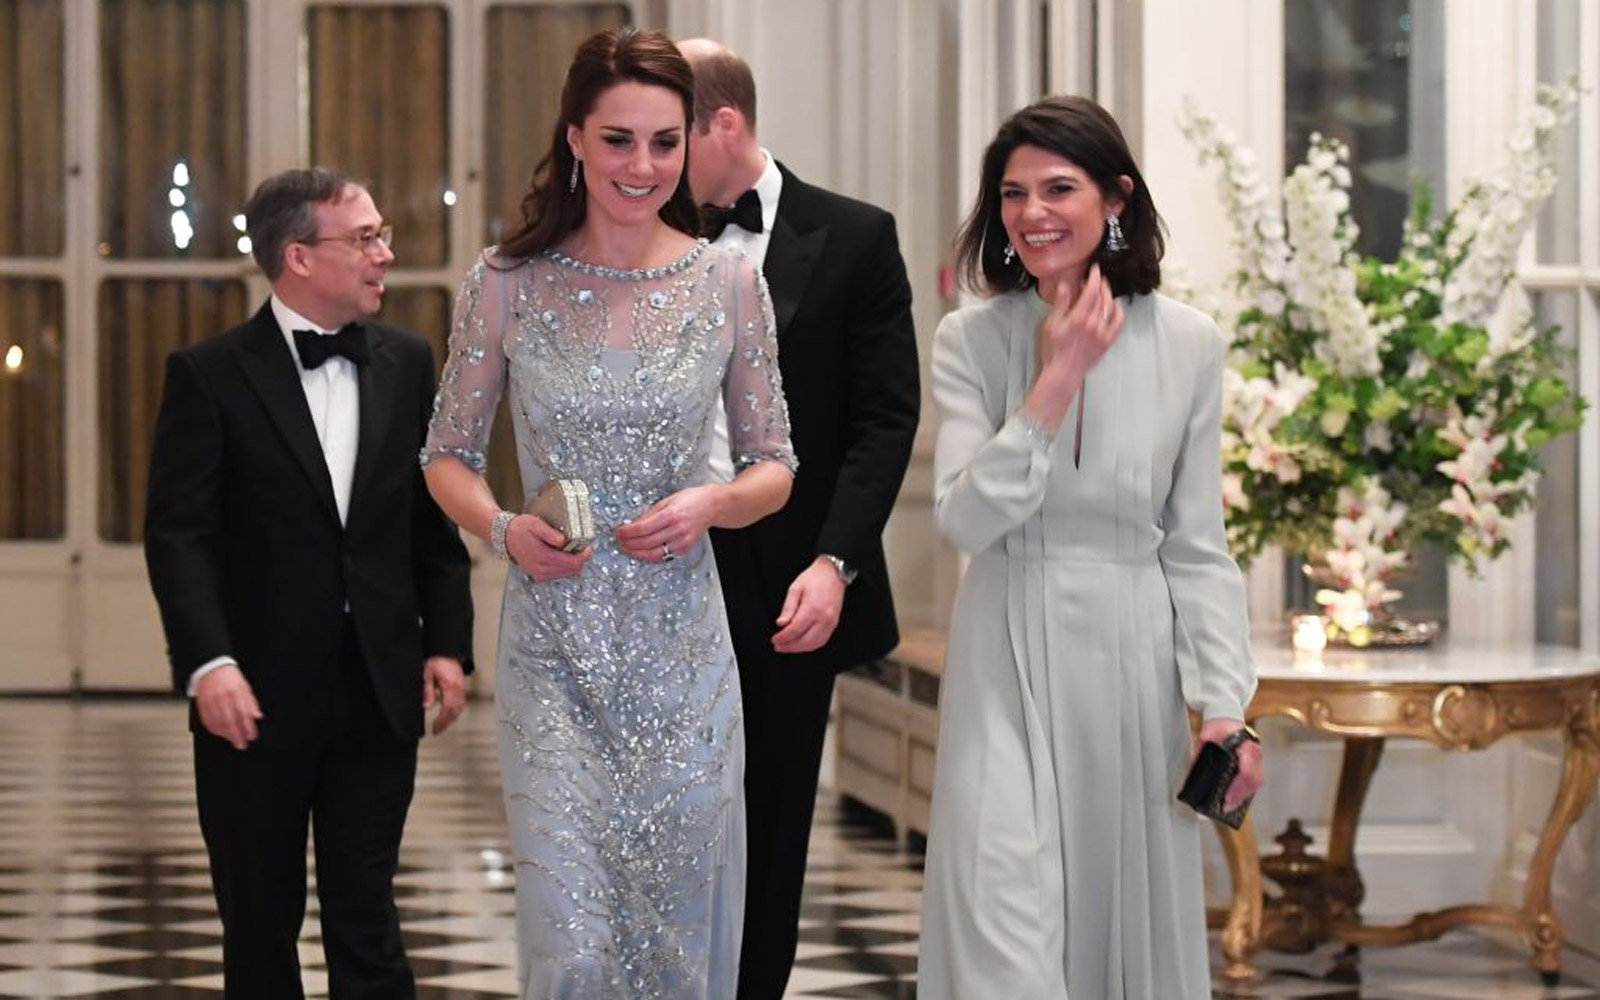 British Ambassador Edward Llewellyn (L) and his wife walk with Britain's Prince, the Duke of Cambridge, and Kate (2nd L), the Duchess of Cambridge, before a diner at the British Embassy in Paris on March 17, 2017. British royals William and Kate arrived